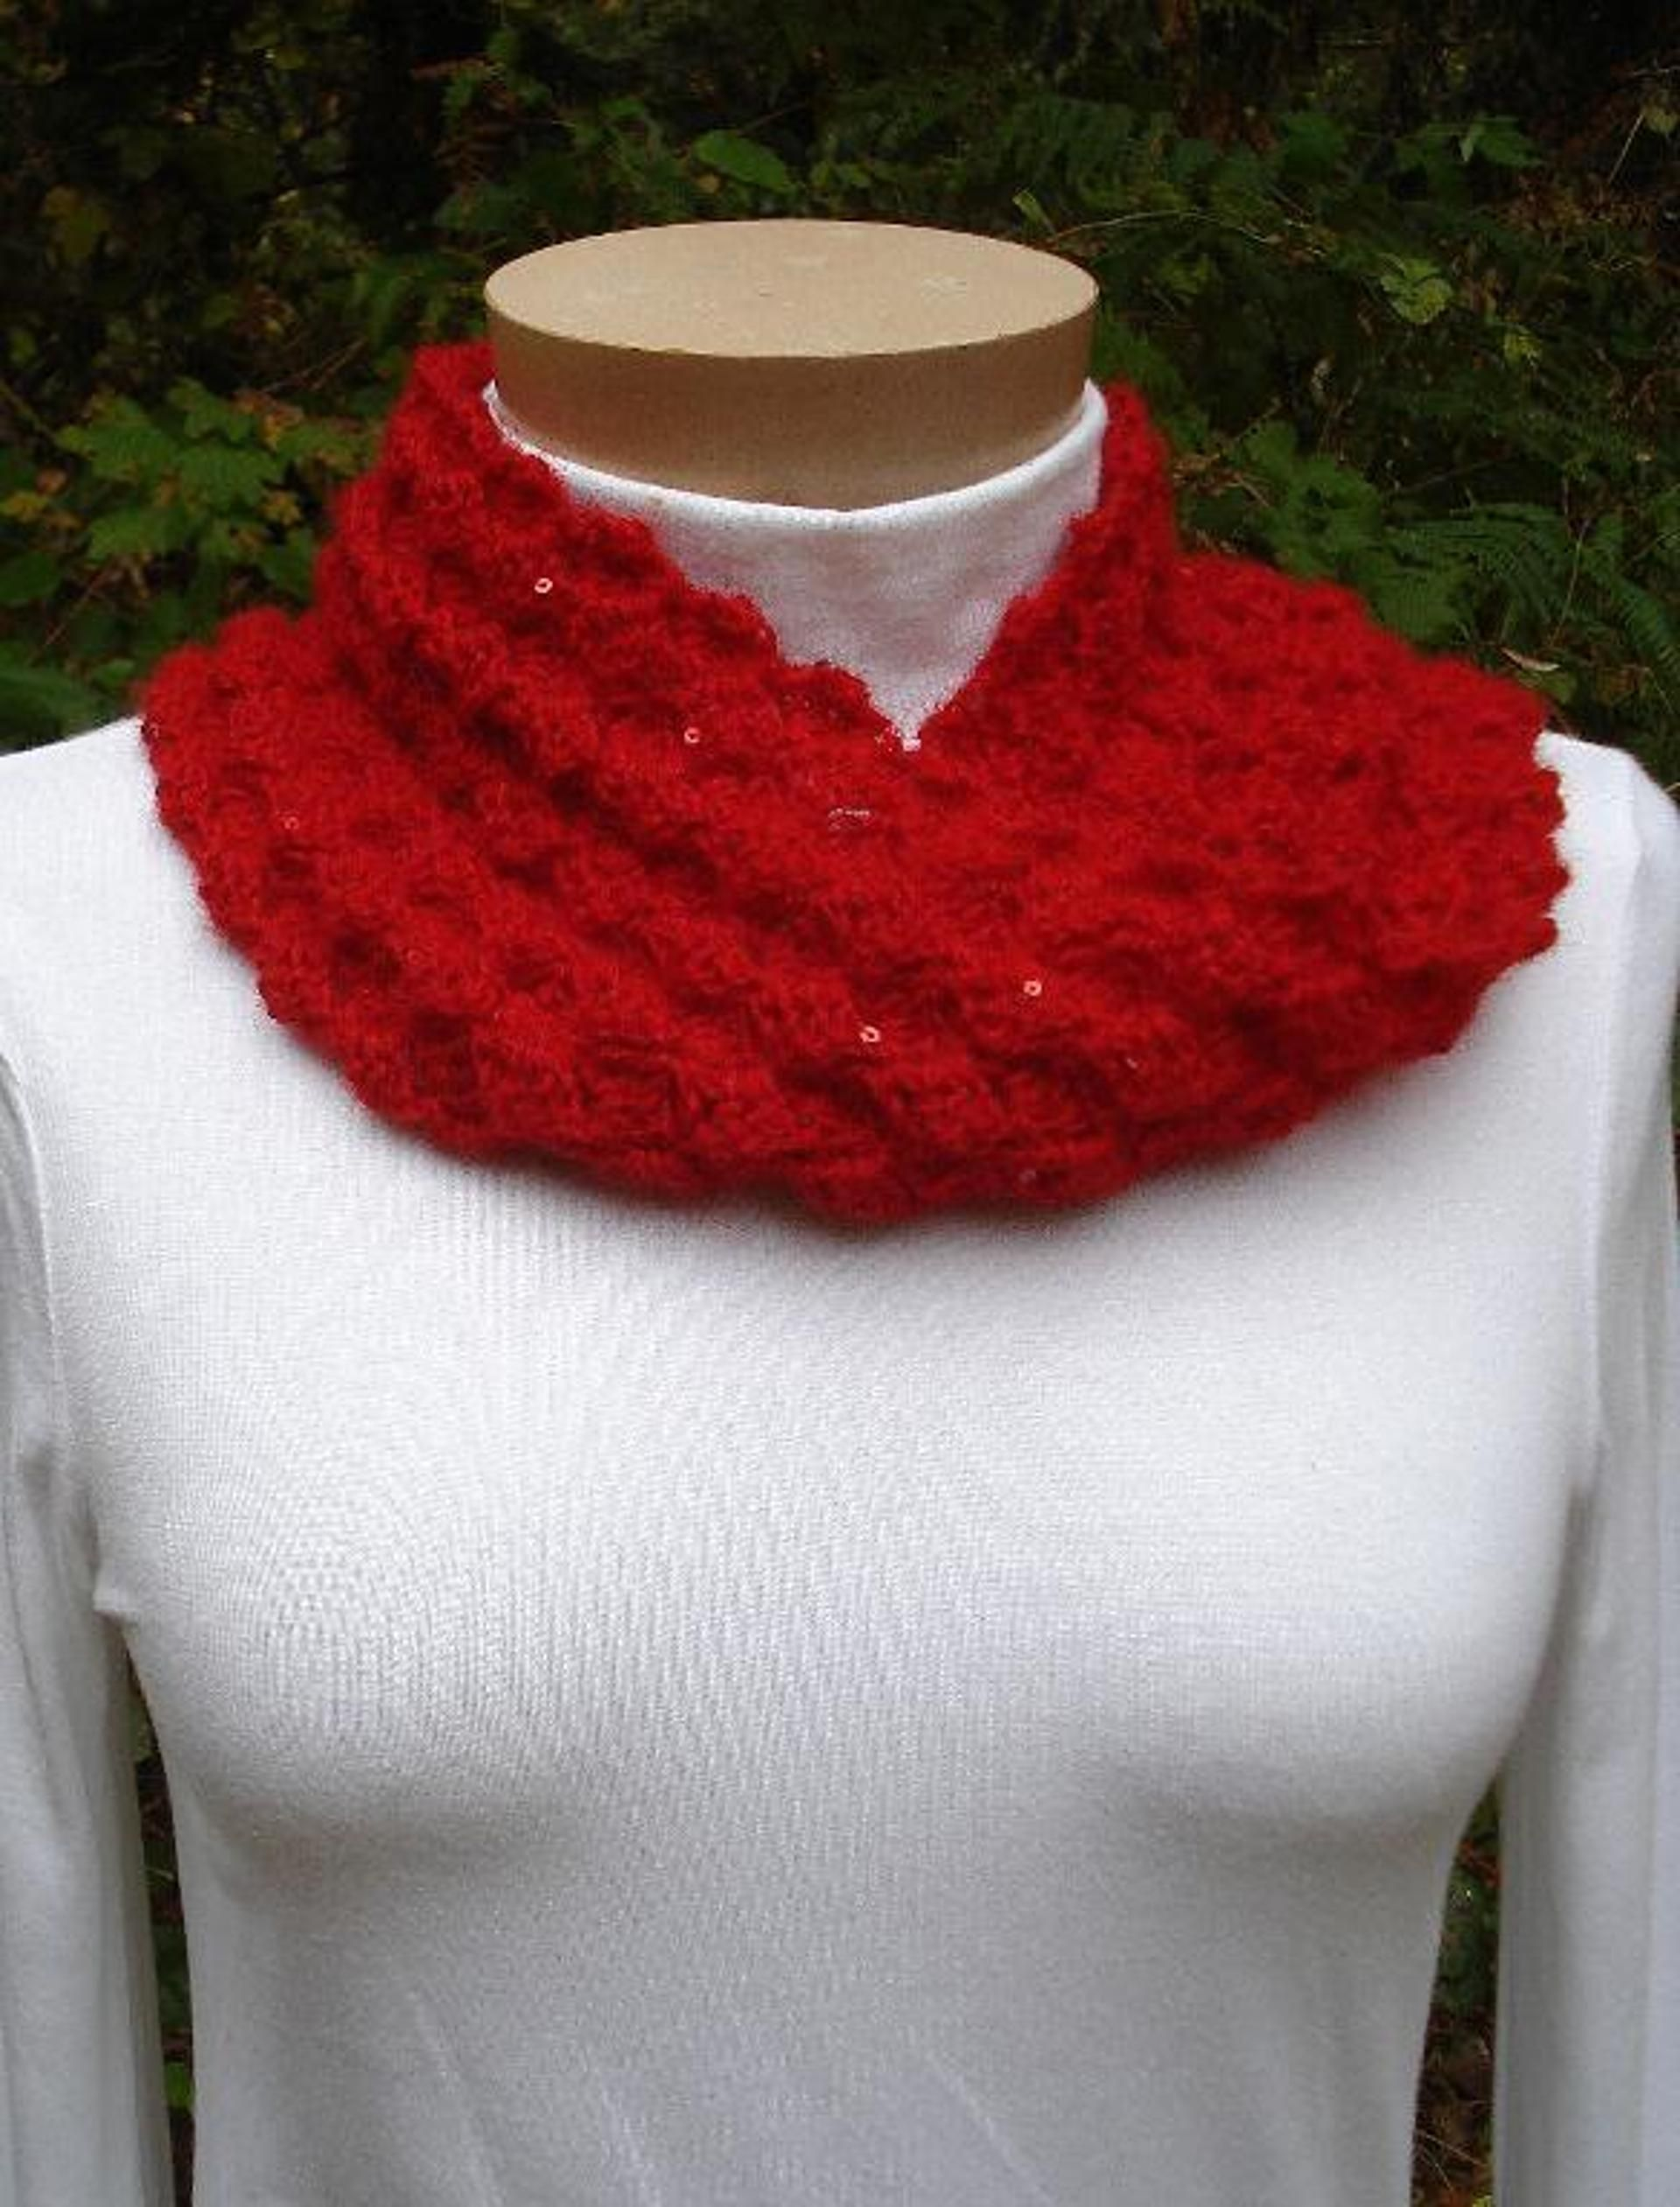 Sequined mobius cowl pa 130a crochet patterns and stitch sequin mobius cowl pa 130a a crochet pattern from nancy brown designer bankloansurffo Image collections